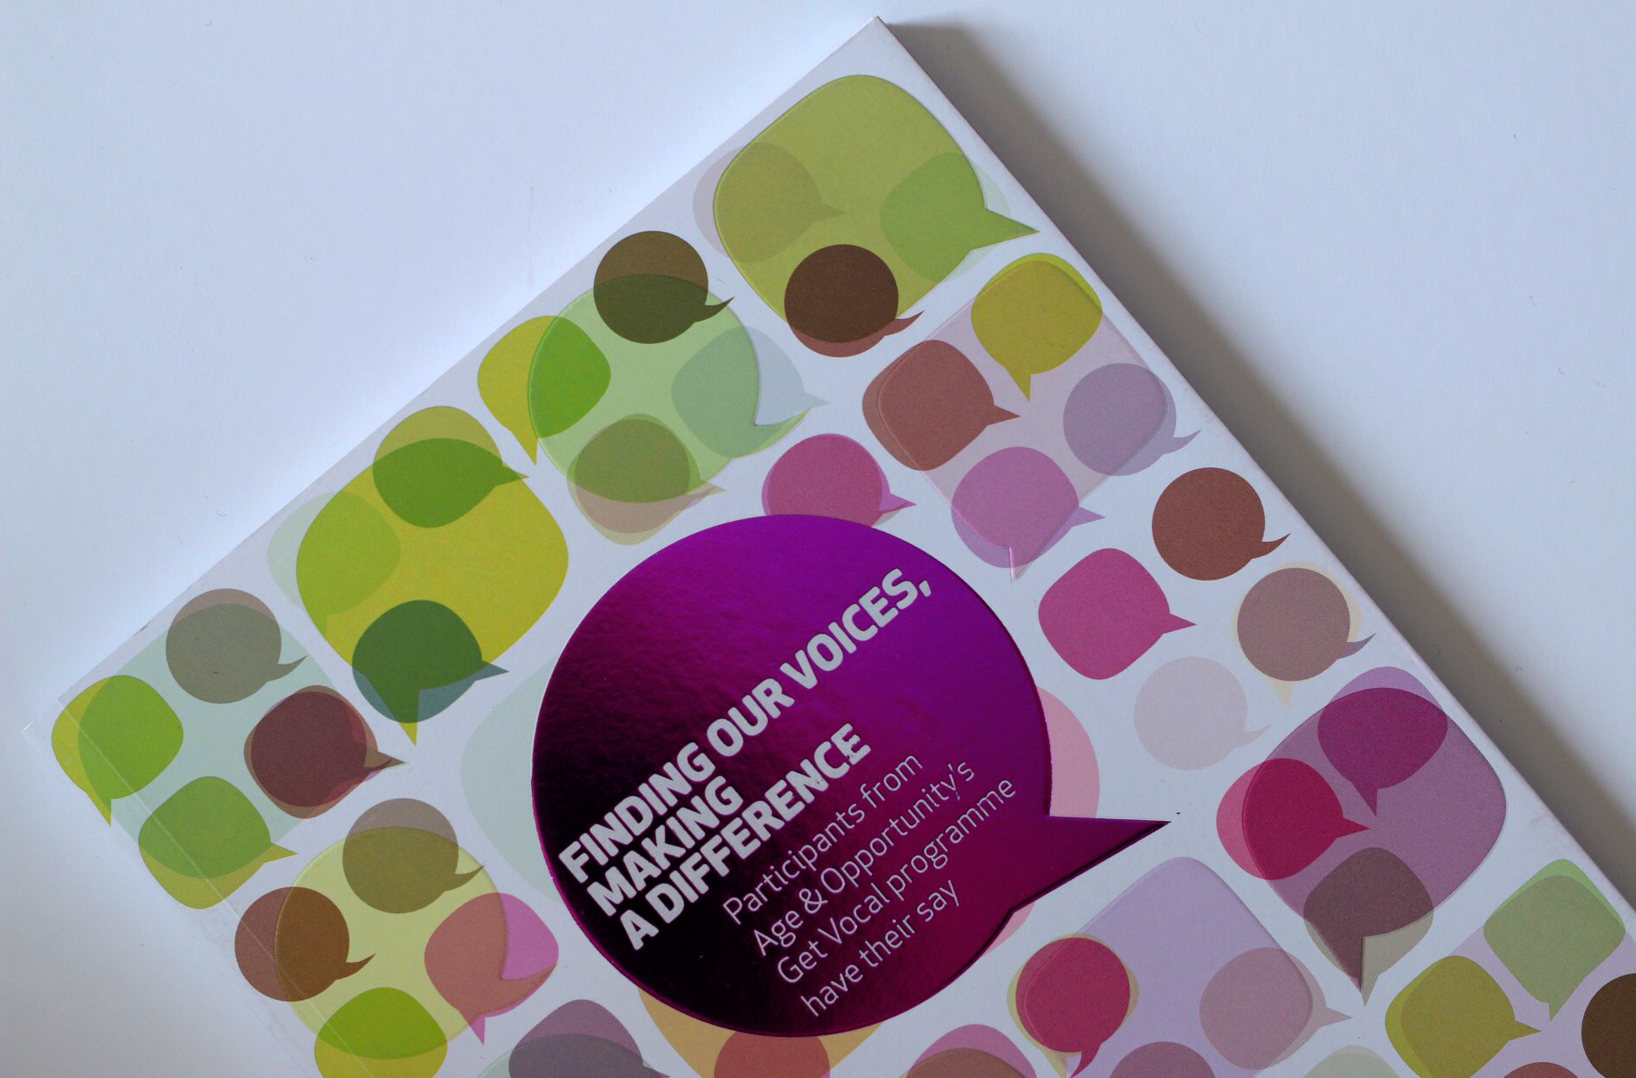 Cover image: Finding our Voices, Making a Difference (2014)